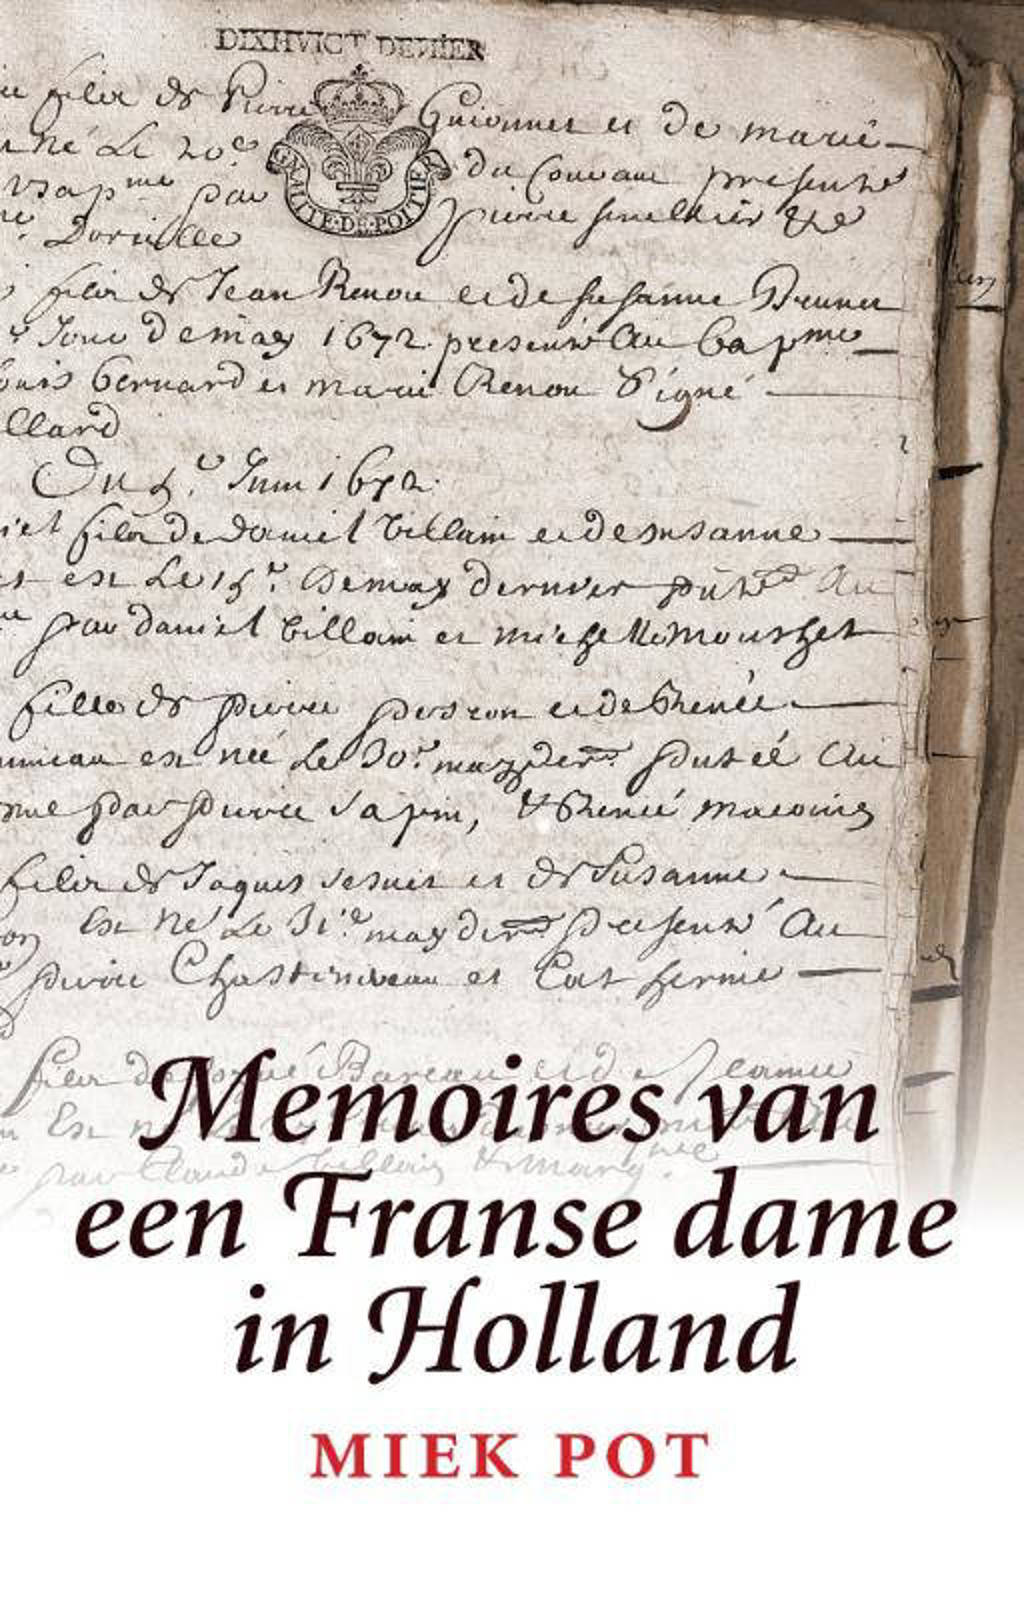 Memoires van een Franse dame in Holland - Miek Pot